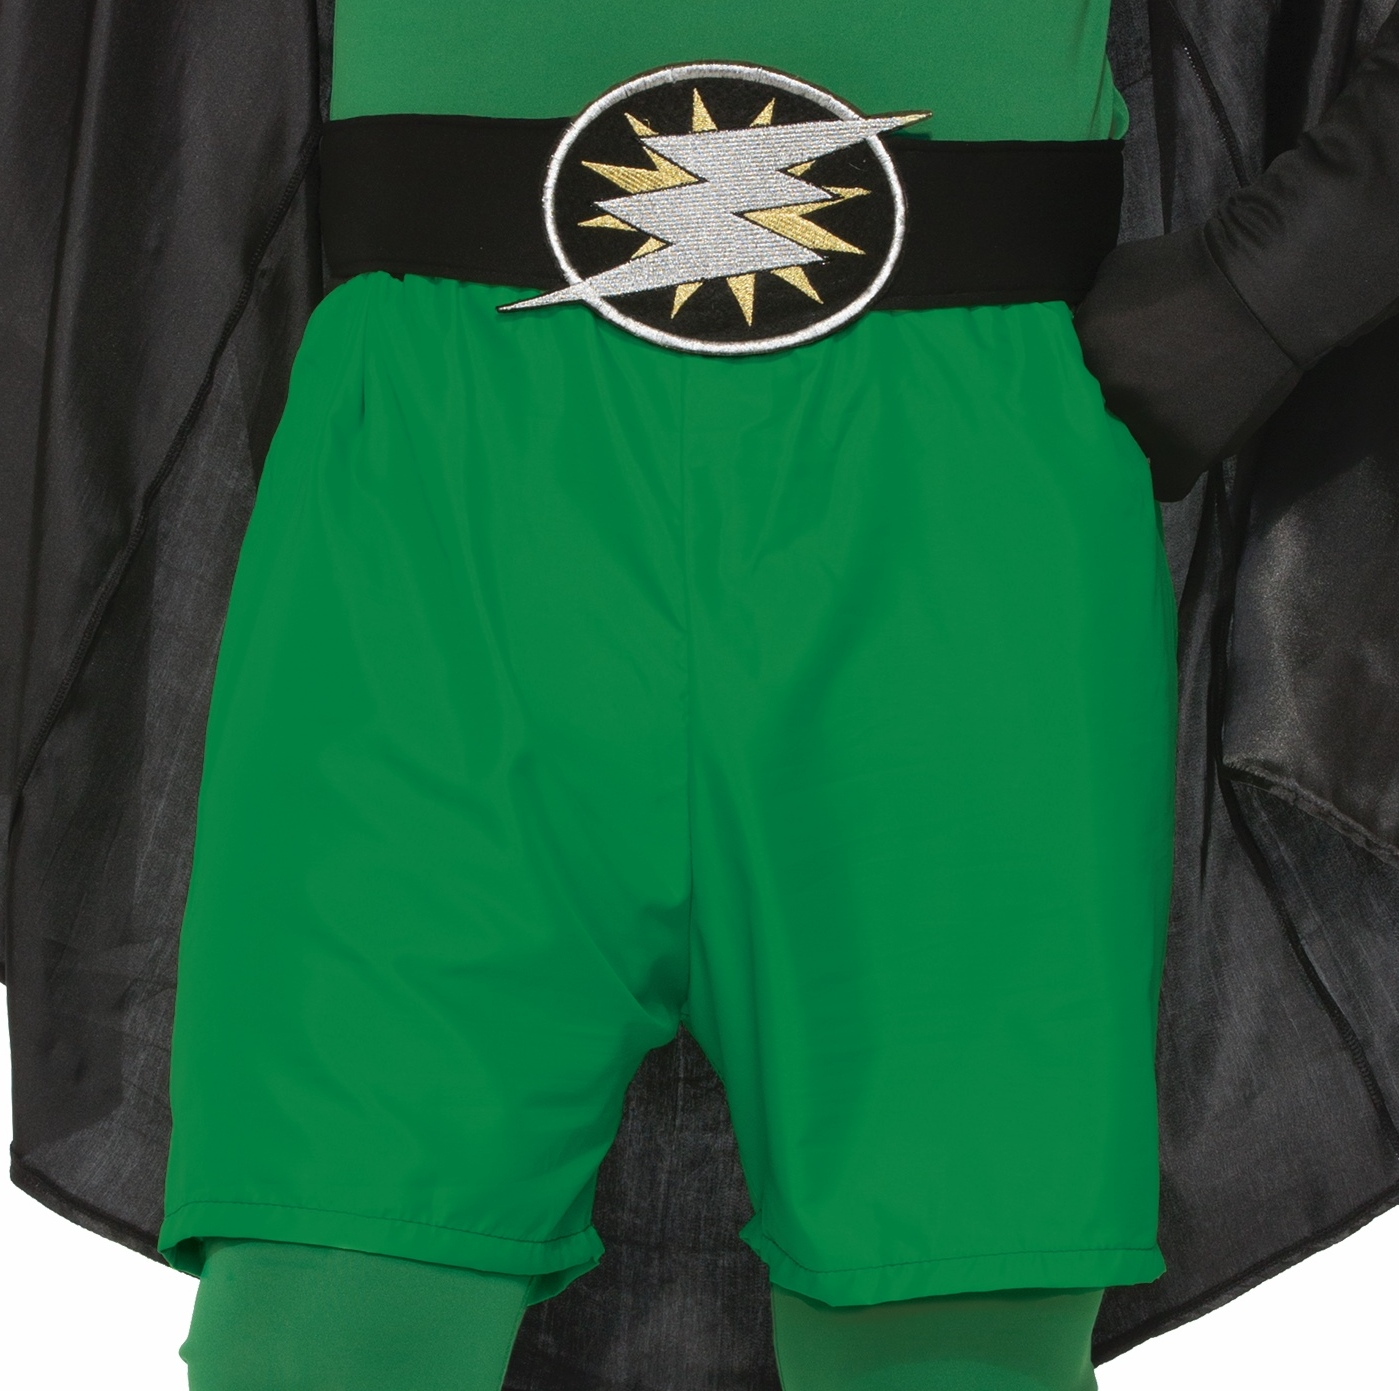 Create-Your-Own-Super-Hero-Adult-Costume-Accessory-Boxer-Shorts-Up-To-34-034-Waist thumbnail 7